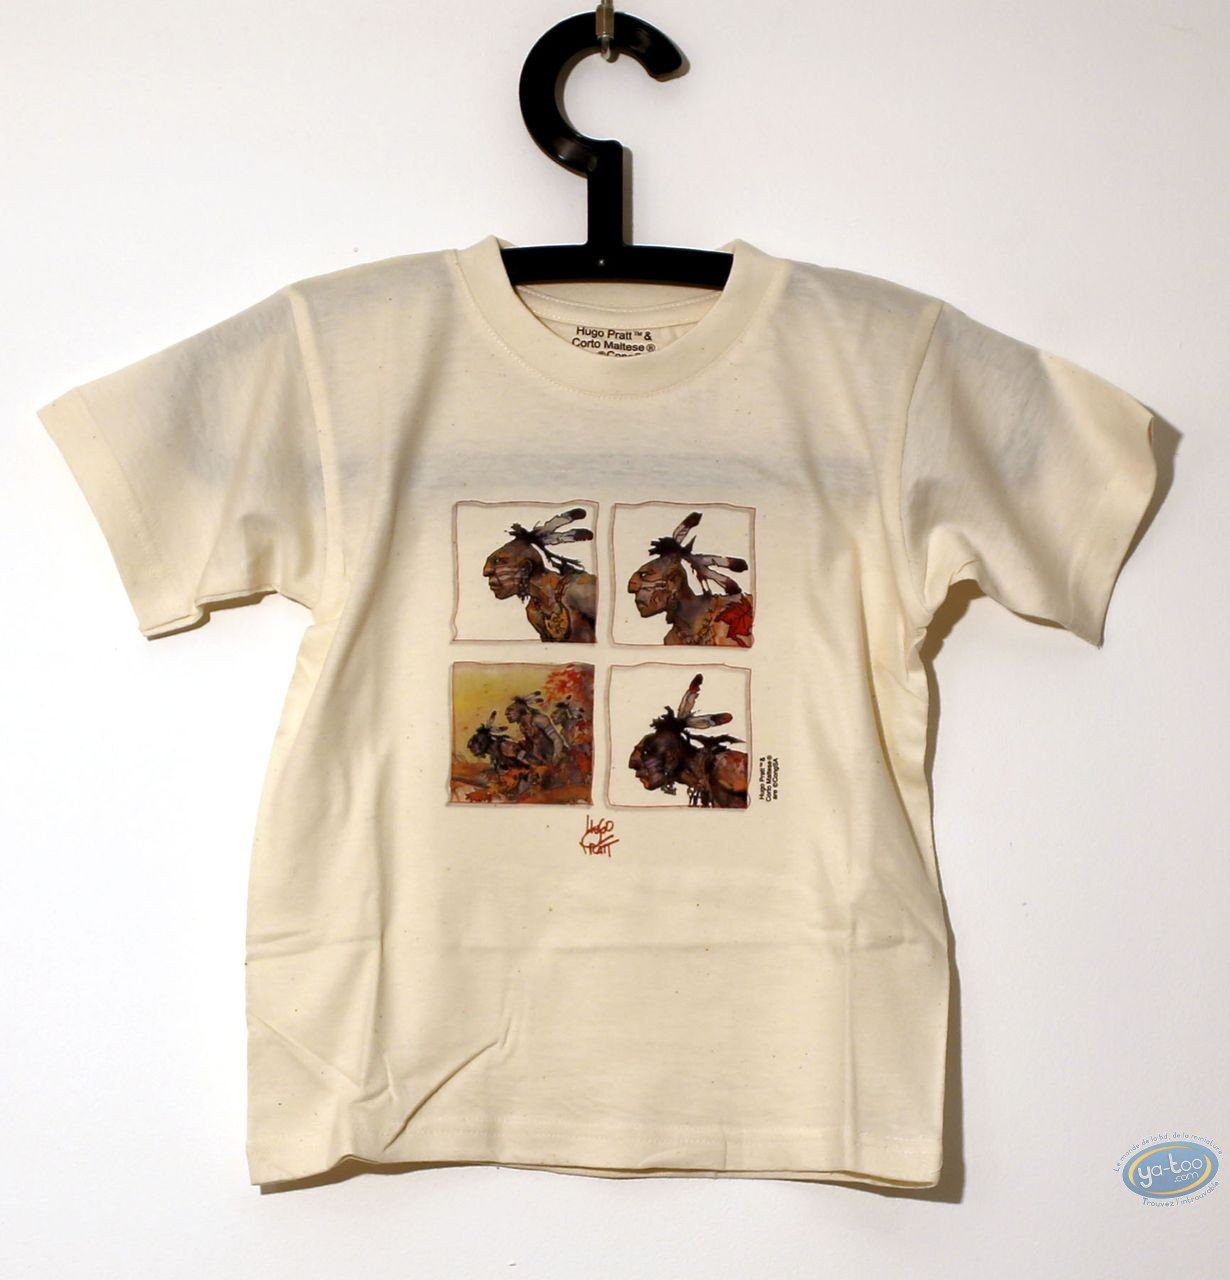 ShirtKid Buy Clothes 06 T Online Corto Maltese 8OkXZ0wnNP